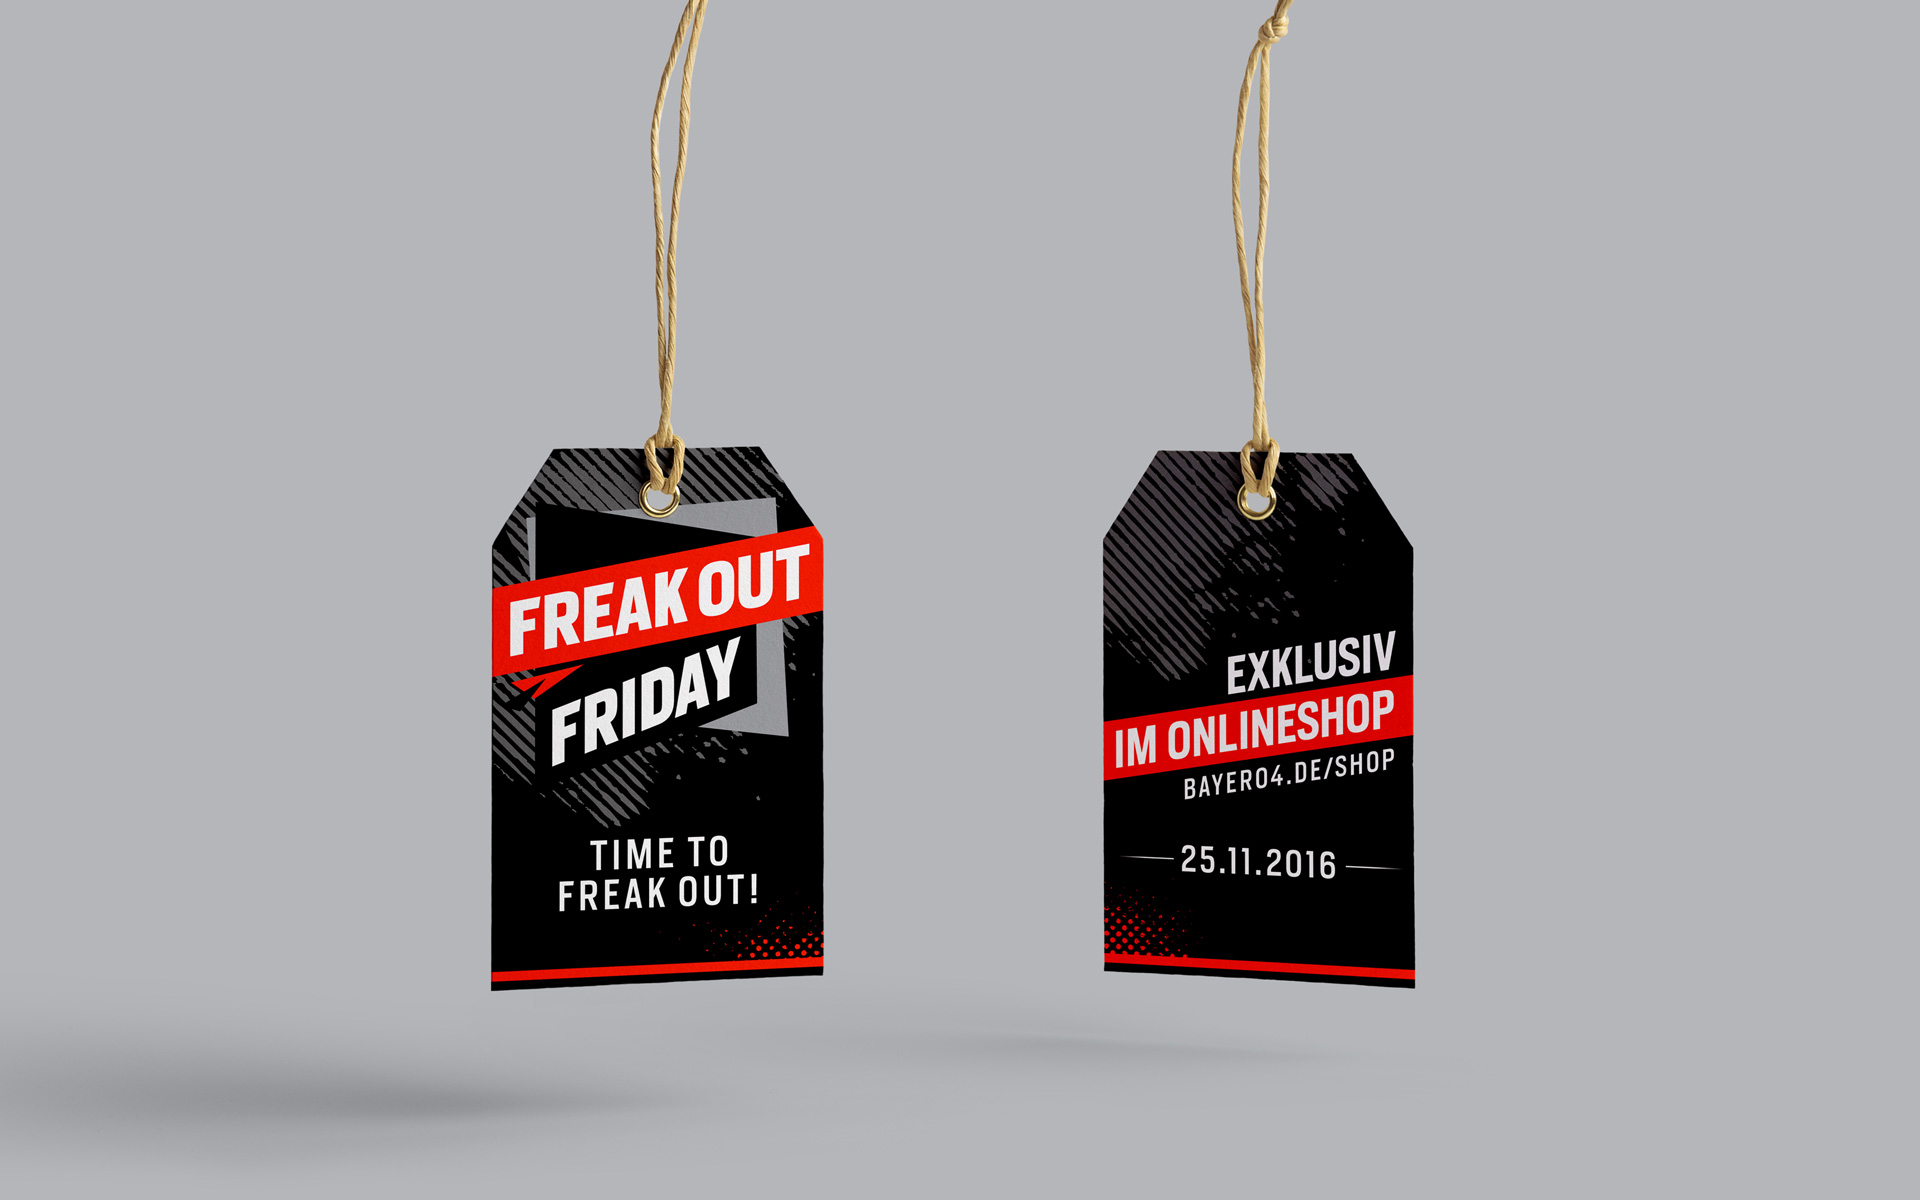 "Saleskampagne ""Freakout Friday"", Bayer 04 Leverkusen, Markenkommunikation, Corporate Design, Hangtag"